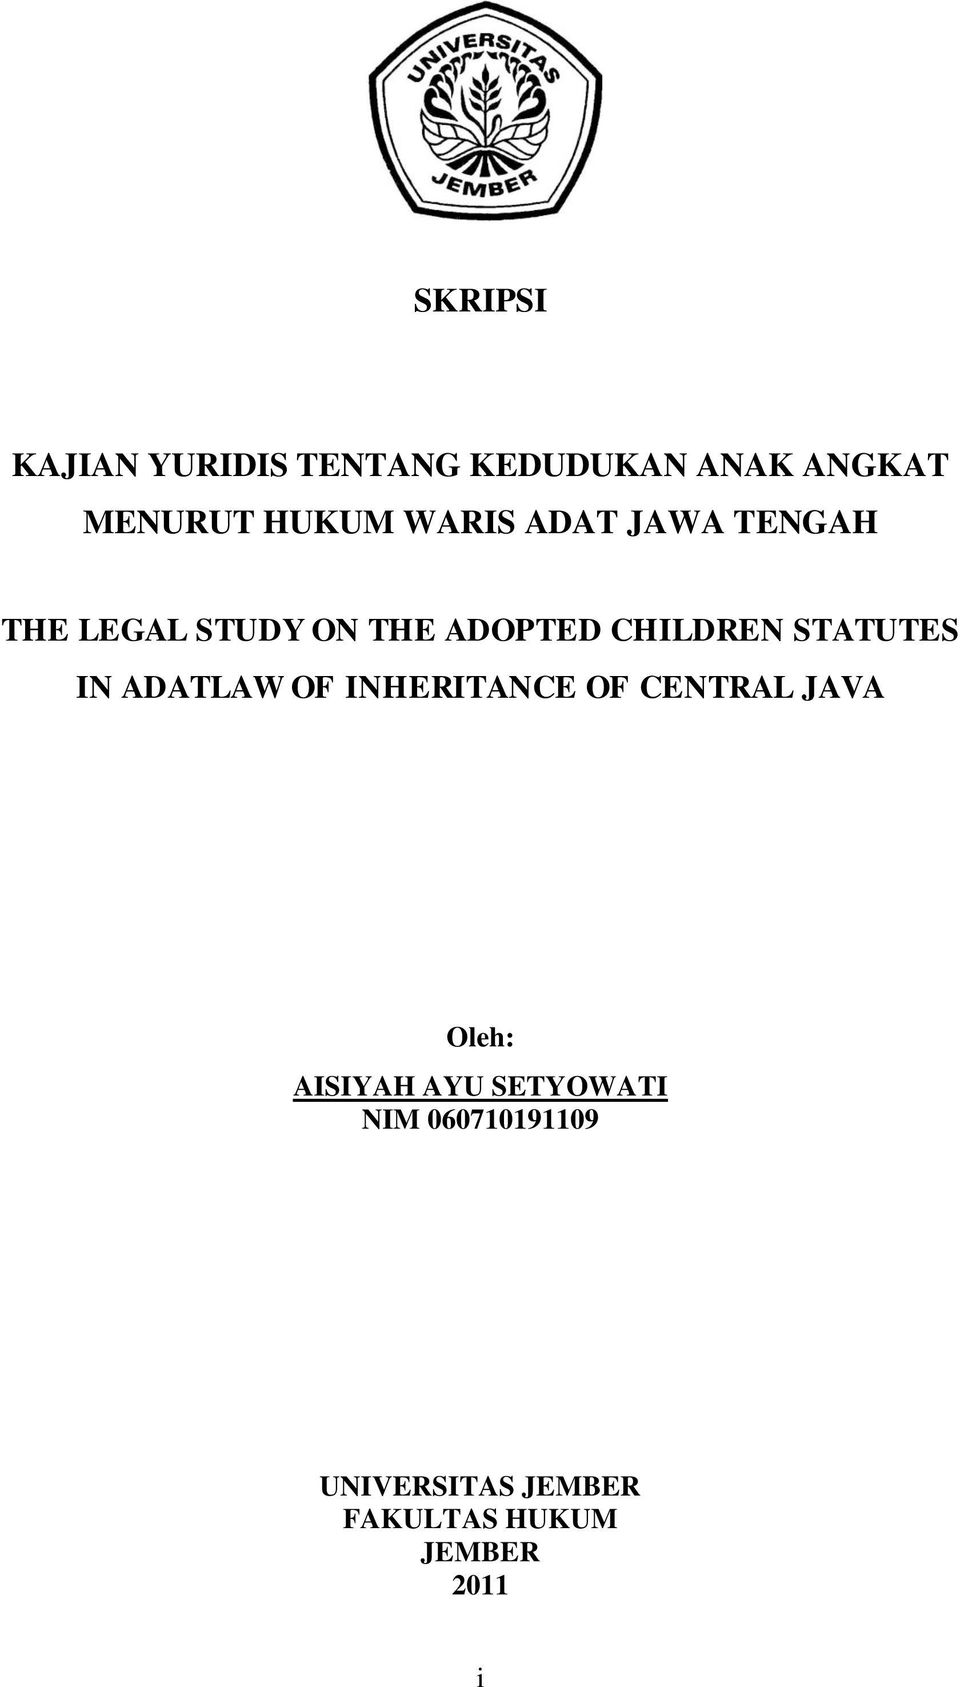 STATUTES IN ADATLAW OF INHERITANCE OF CENTRAL JAVA Oleh: AISIYAH AYU